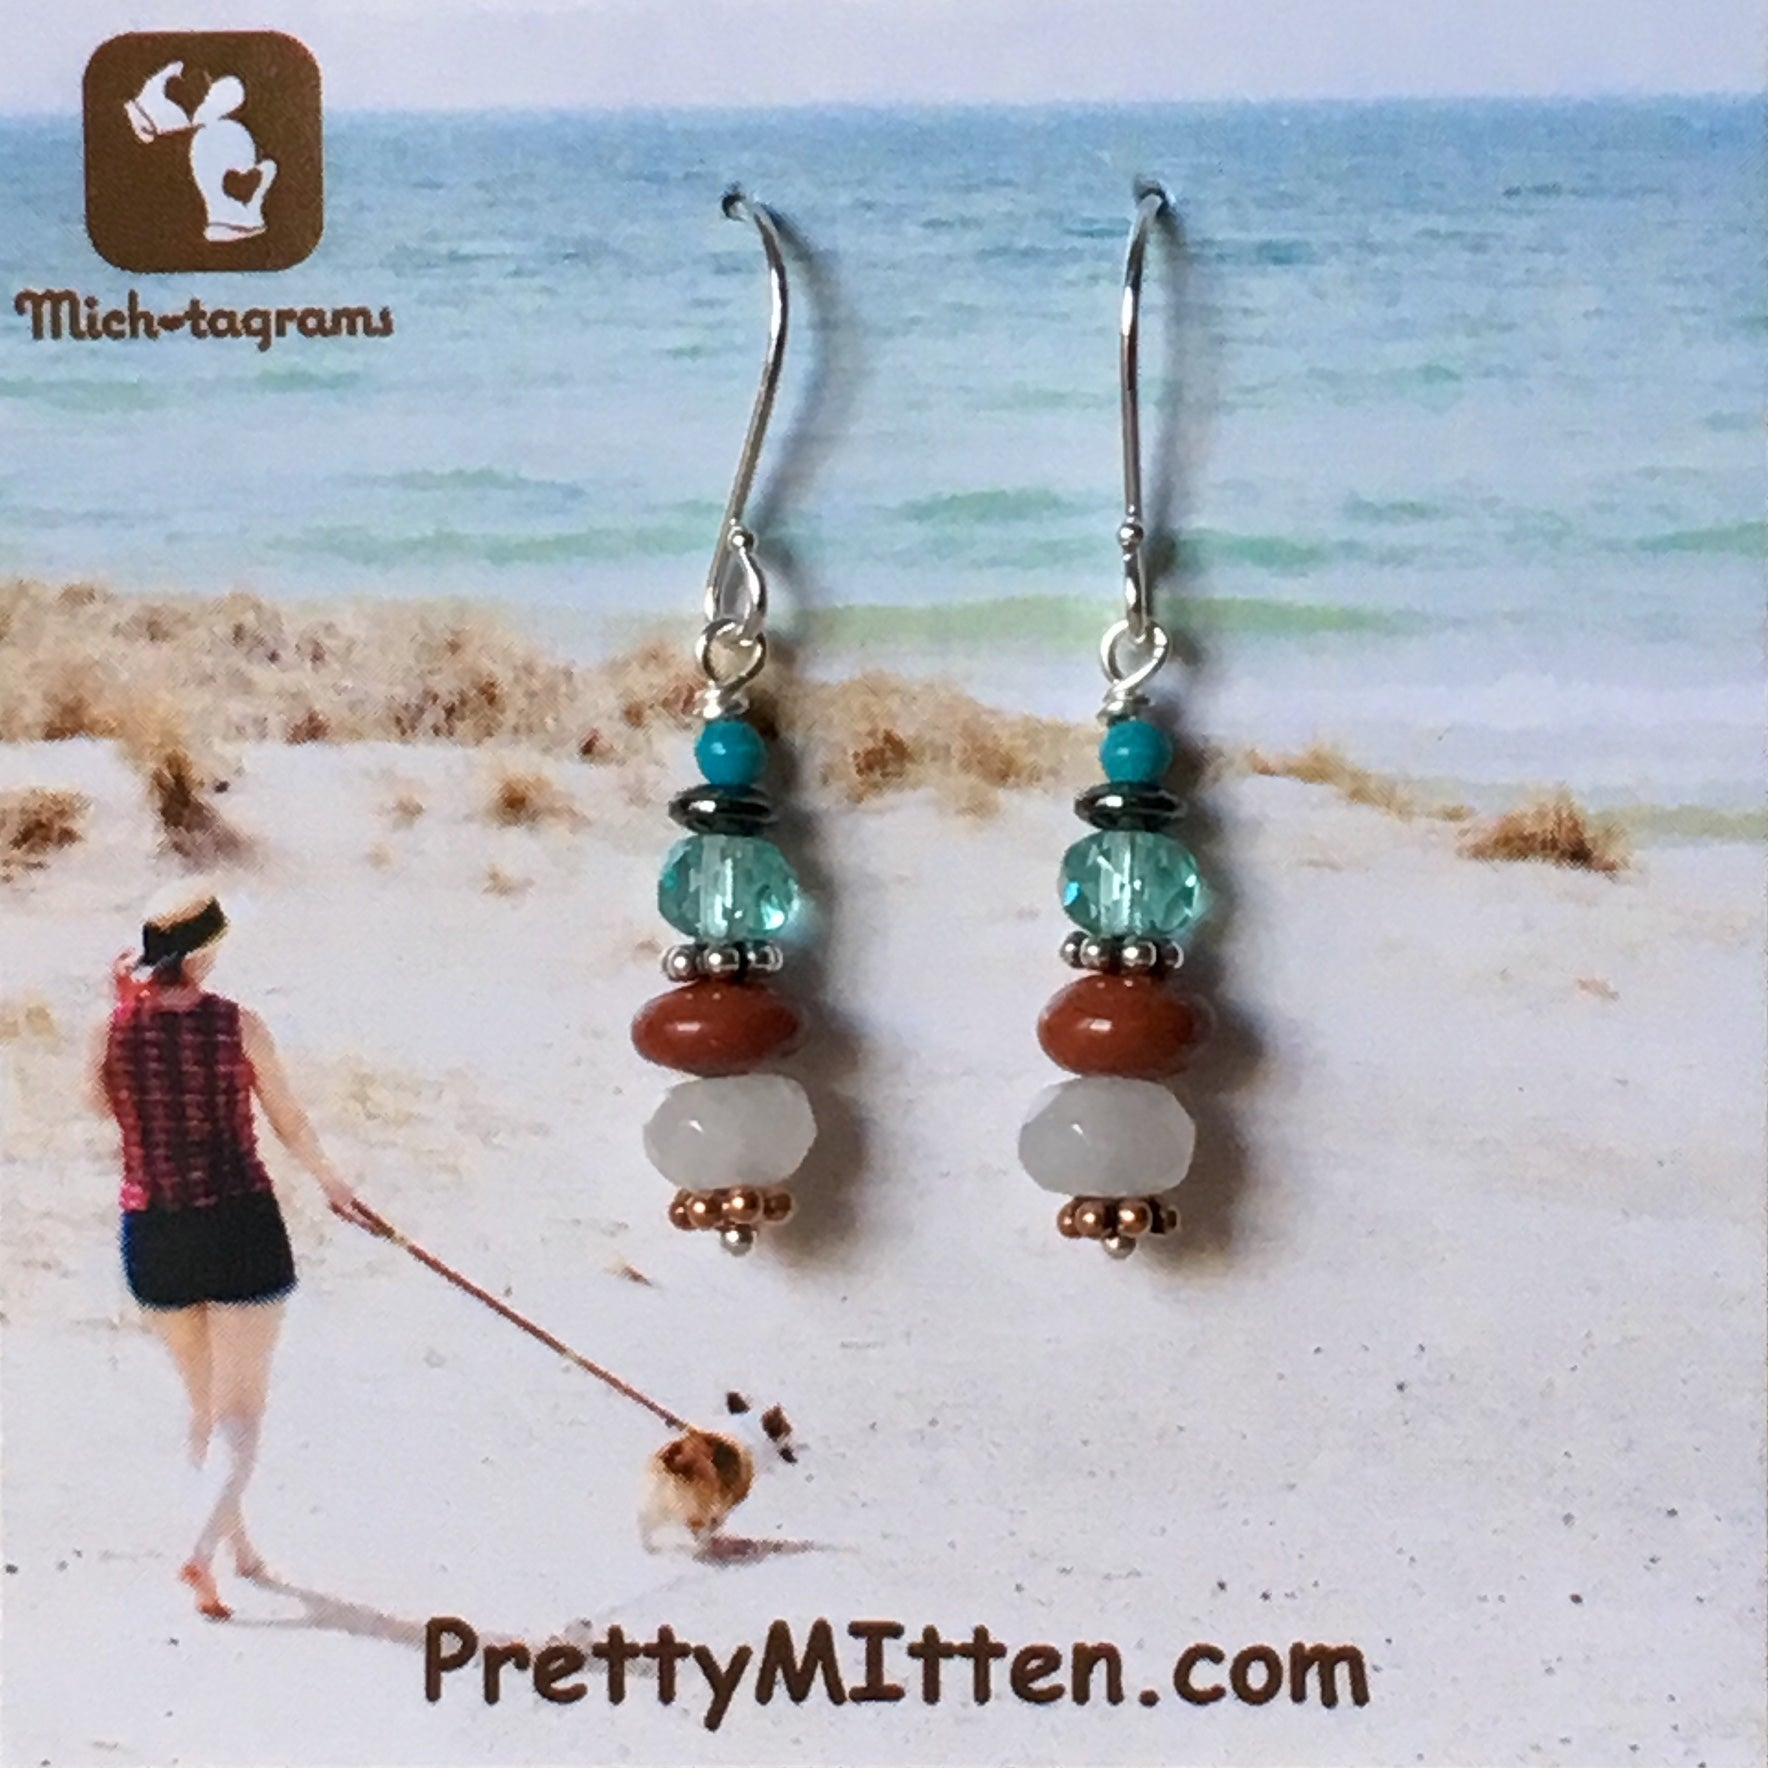 Michtagrams Earrings